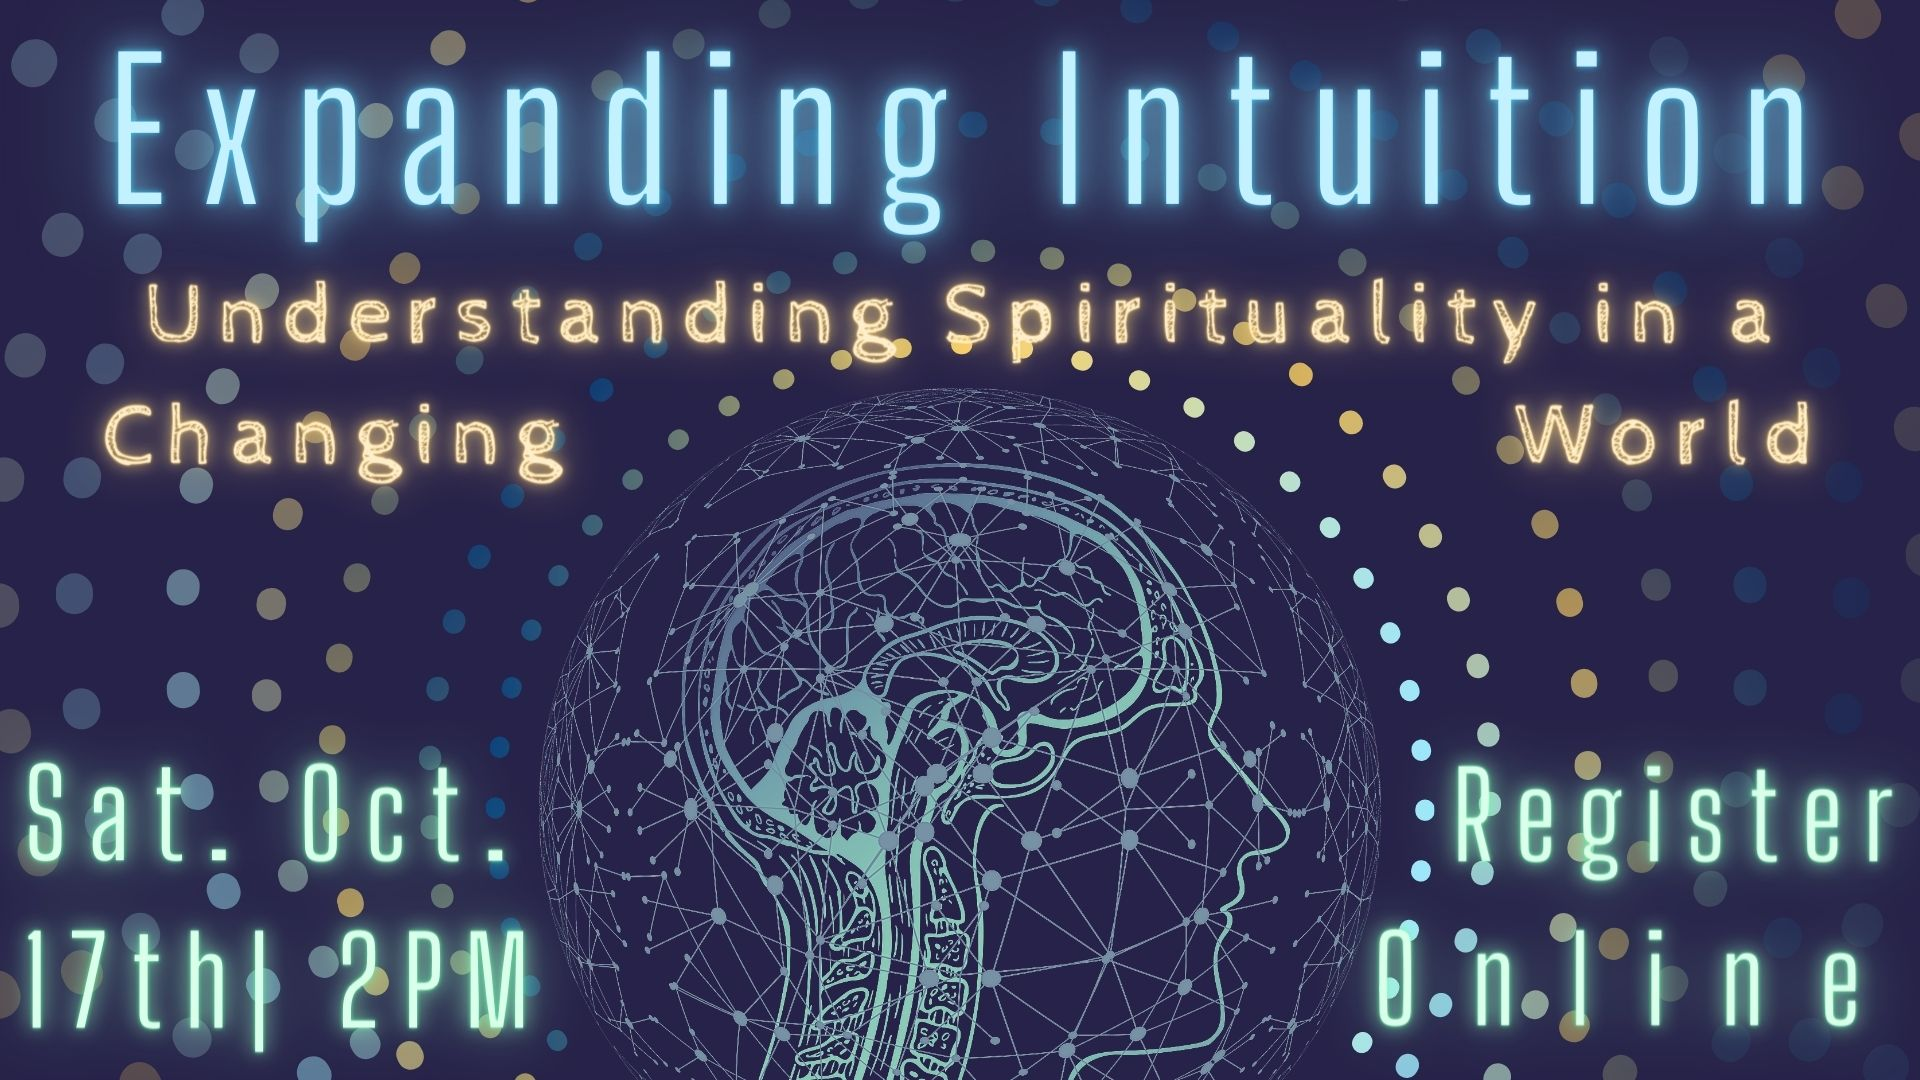 Expanding Intuition: Understanding Spirituality in a Changing World